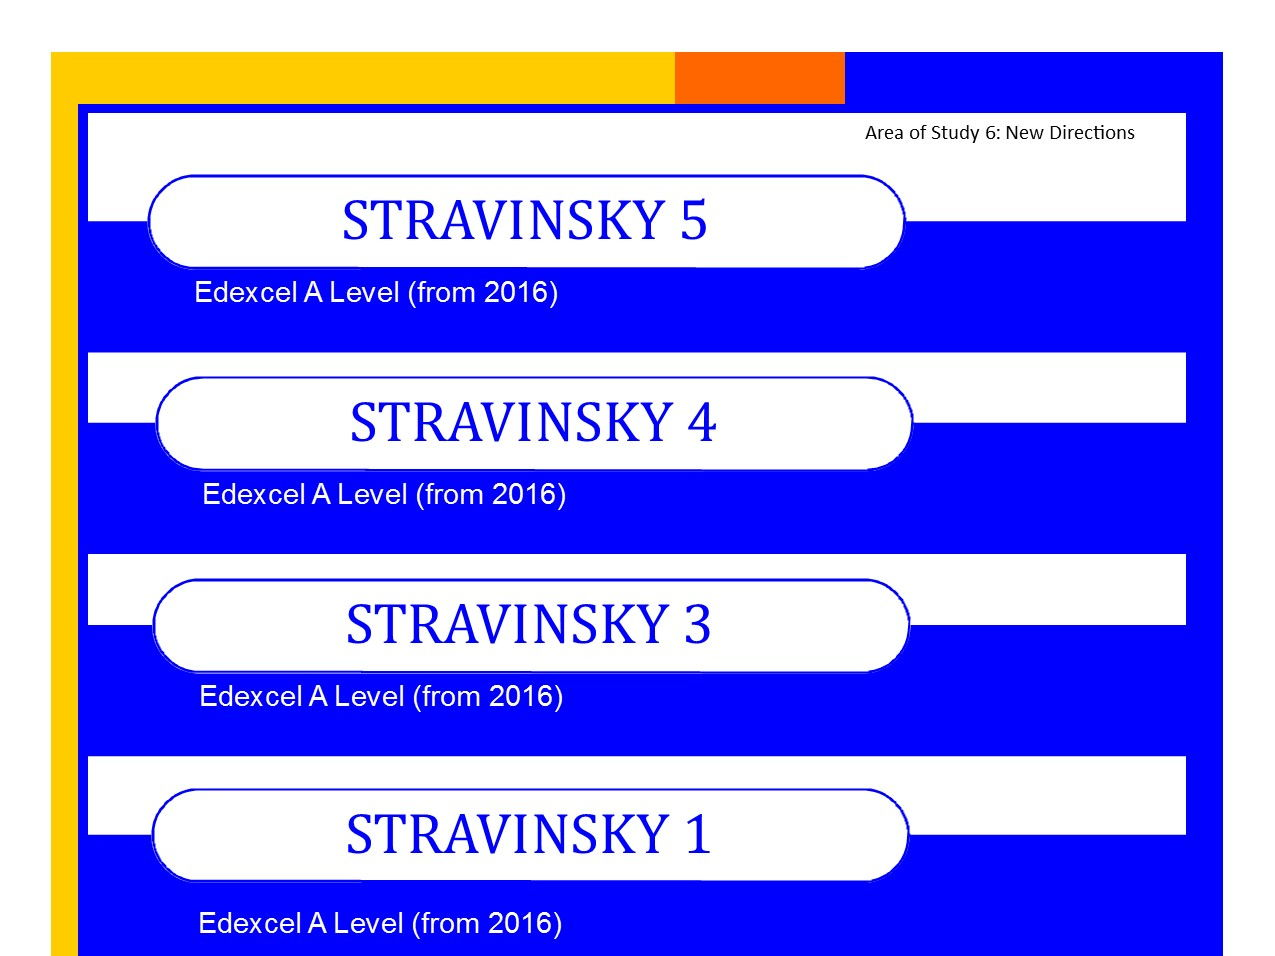 Bundle of Edexcel Music A level (from 2016) Stravinsky worksheets 1,3,4 and 5 PLUS Elements of Music summary sheets.